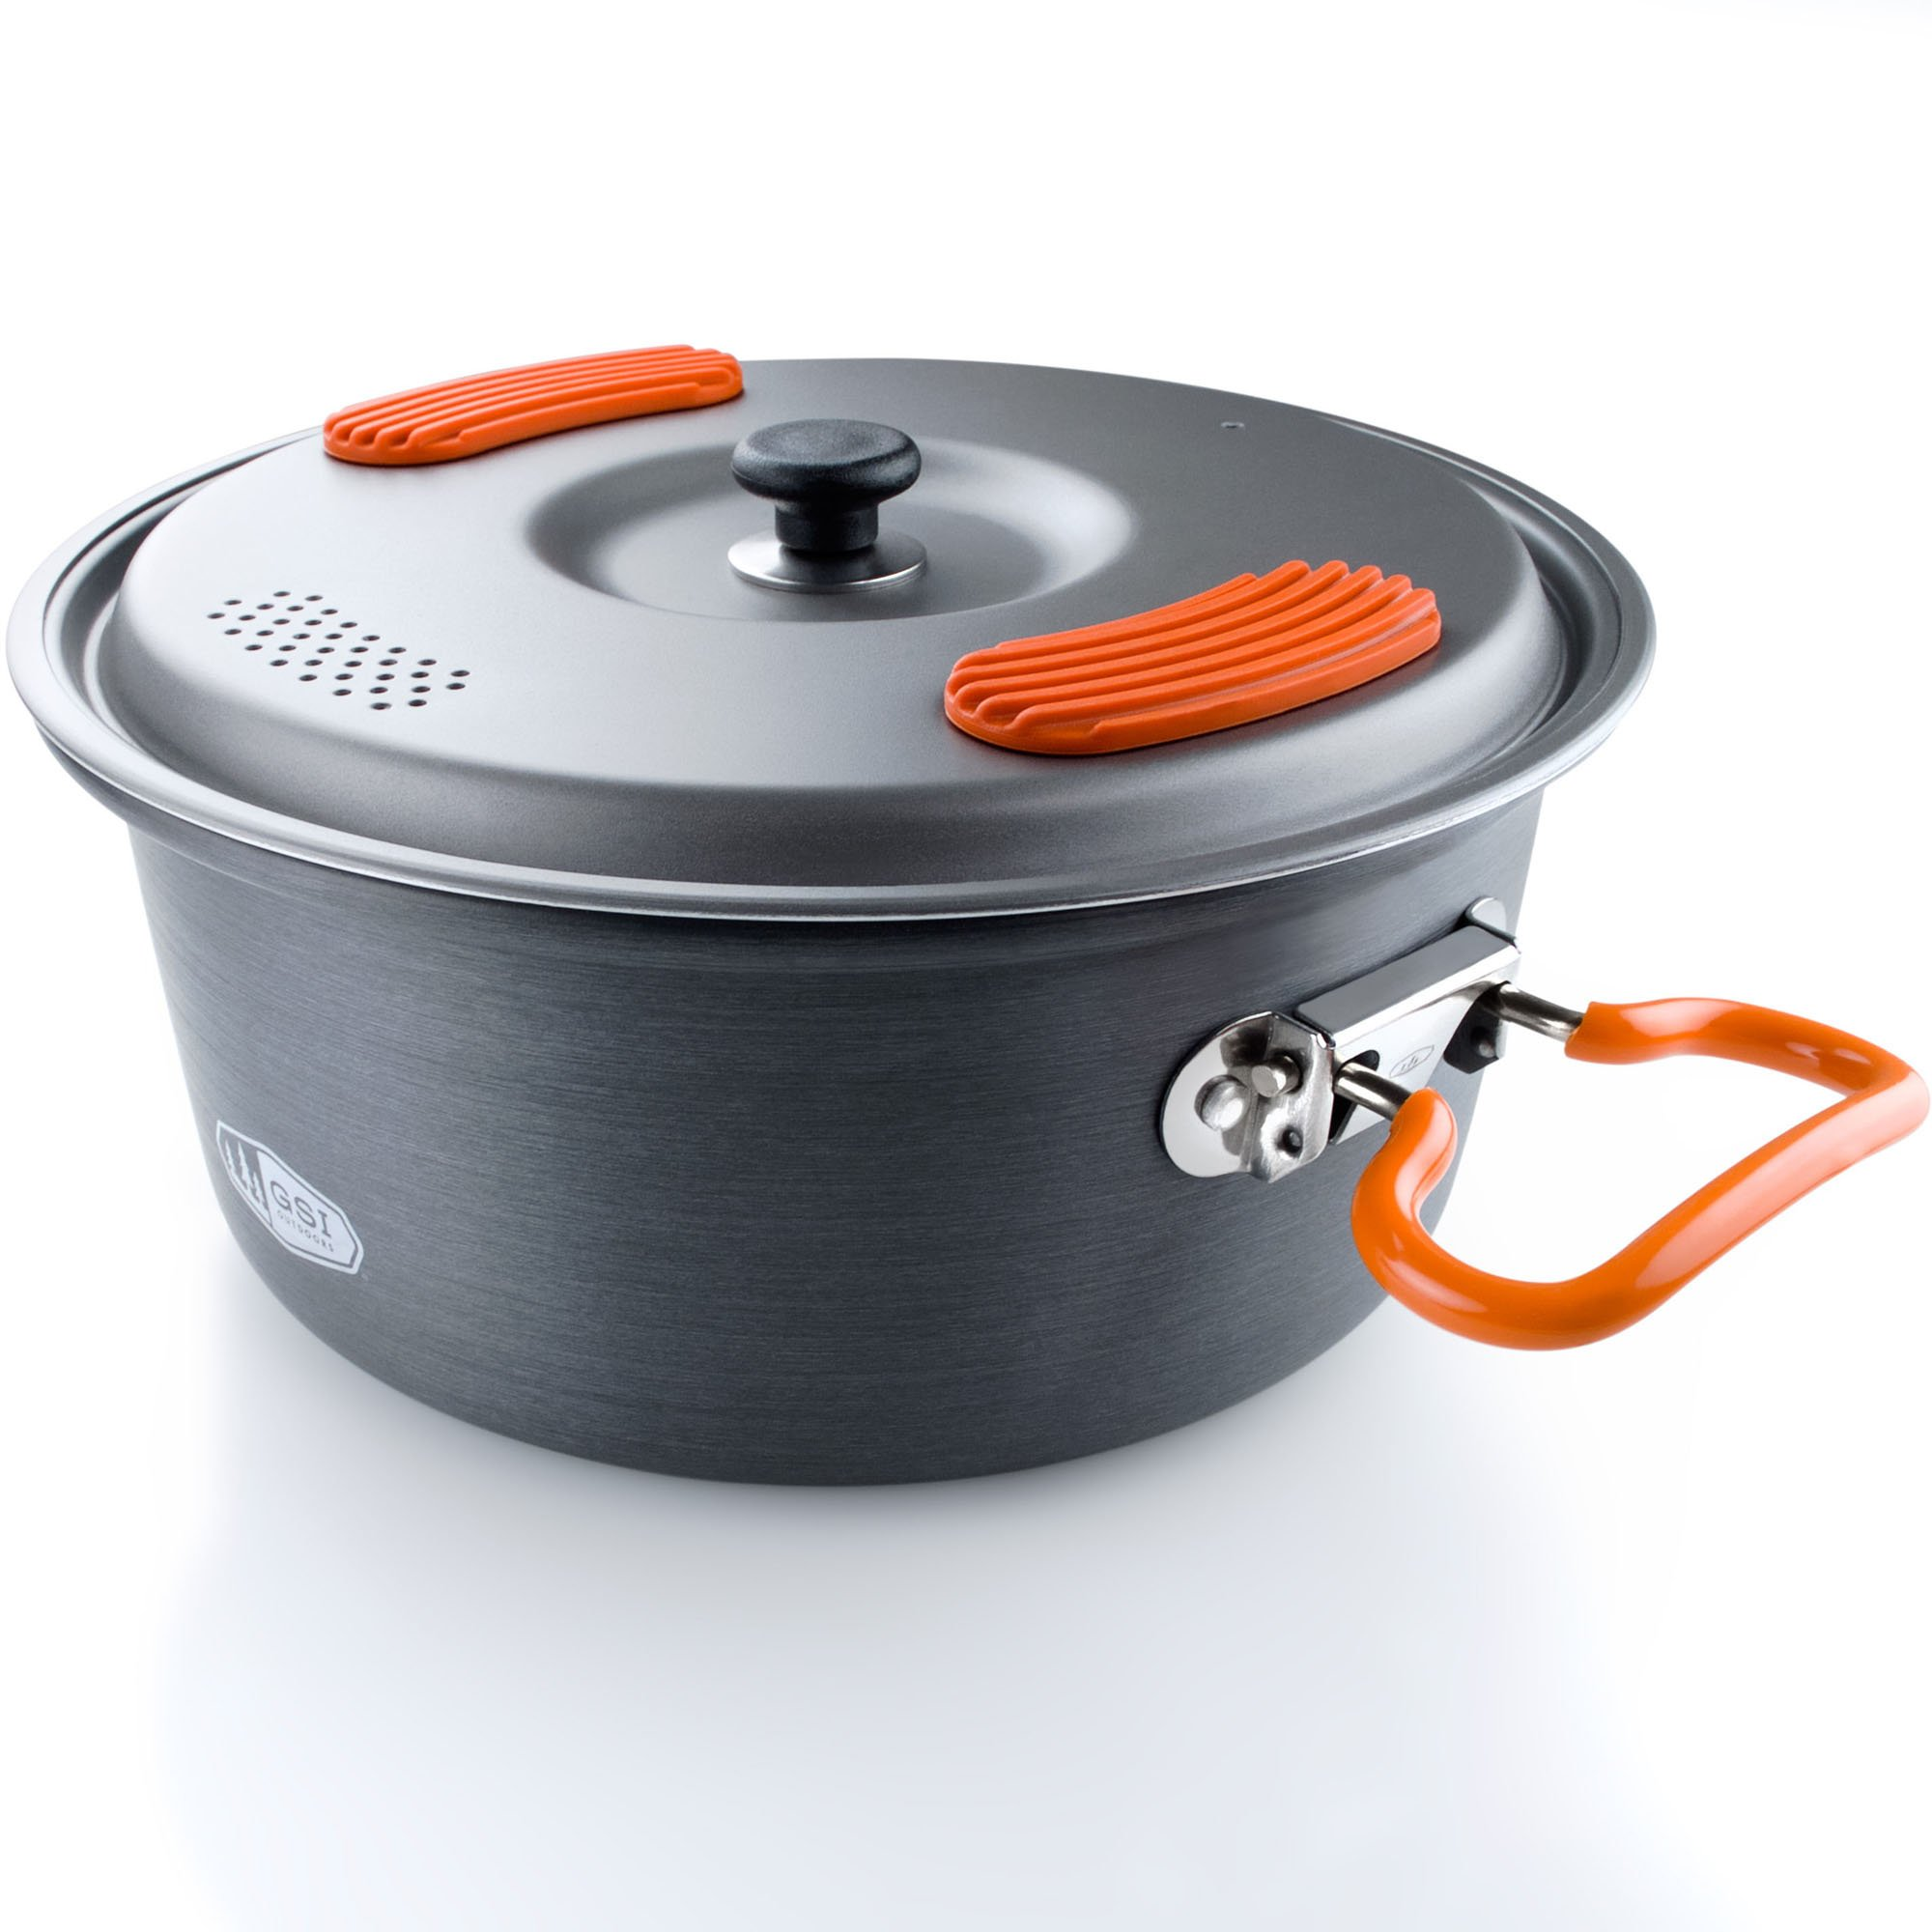 GSI Outdoors - Halulite Cook Pot, Camping Cook Pot, Superior Backcountry Cookware Since 1985 by GSI Outdoors